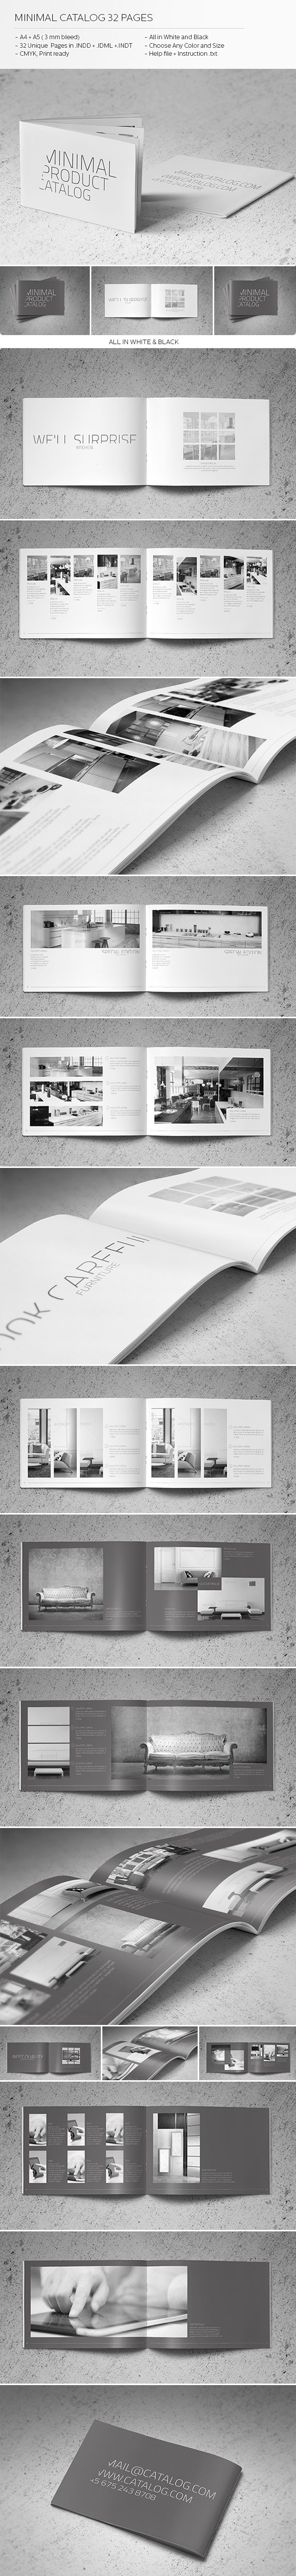 Minimal Catalog by Realstar, via Behance